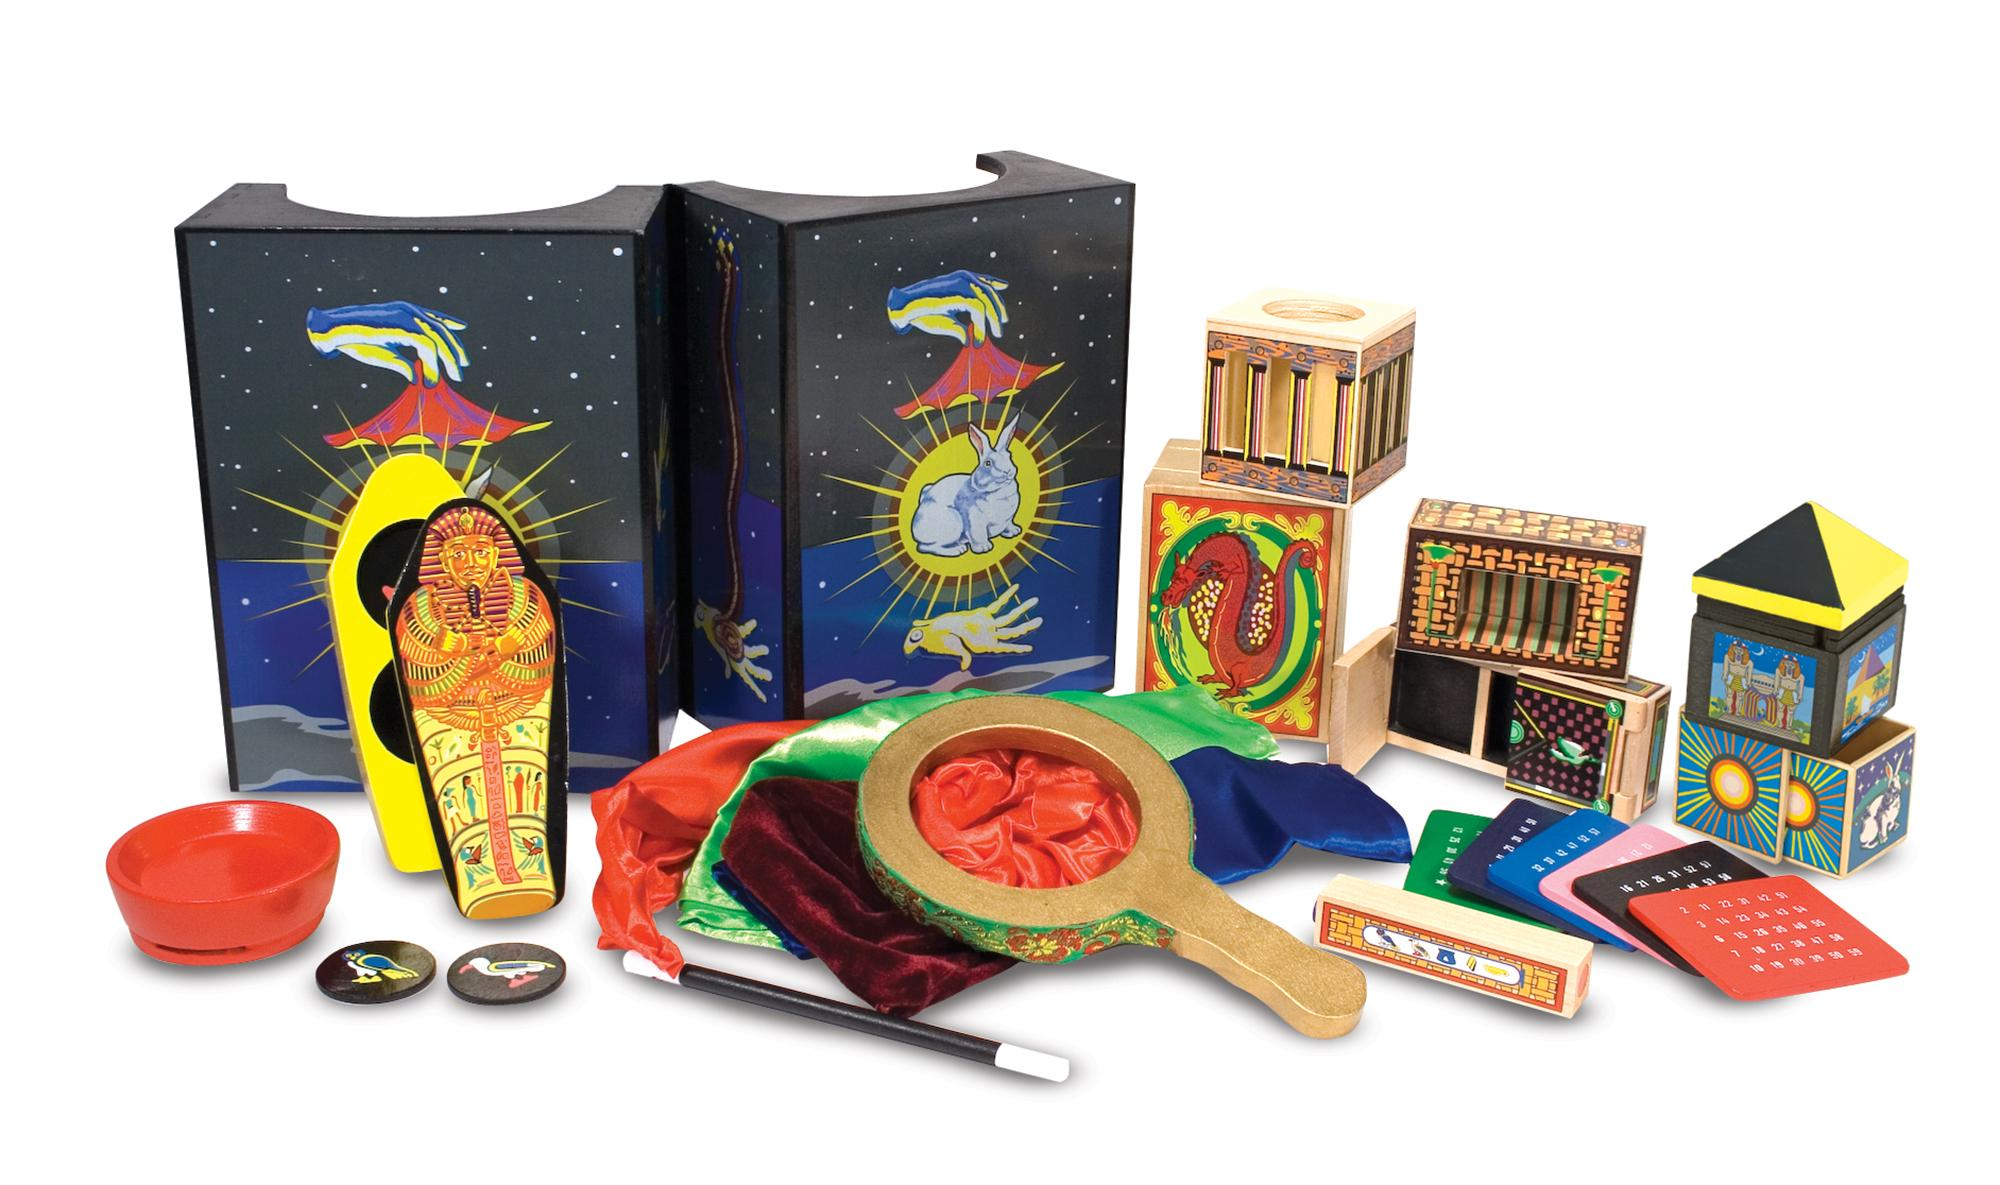 Amazon Melissa & Doug Deluxe Solid Wood Magic Set With 10